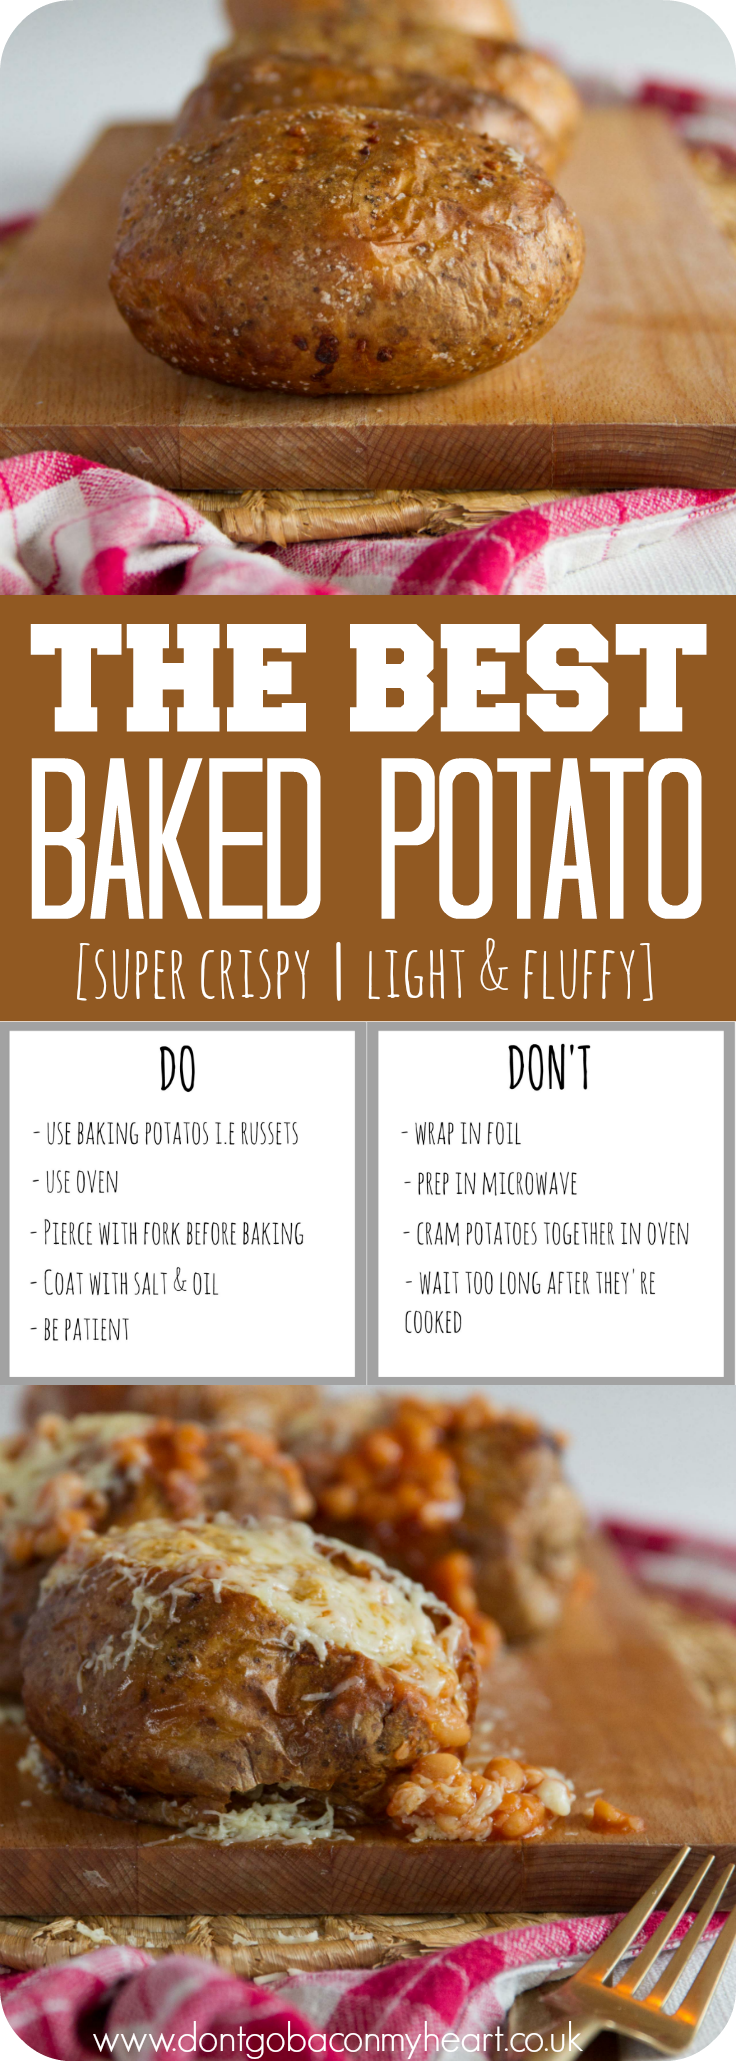 A step by step guide to making the Best Baked Potato. Crispy on the outside and fluffy on the inside, the perfect Jacket Potato is yours, ready and waiting! #potato #bakedpotato #jacketpotato | www.dontgobaconmyheart.co.uk